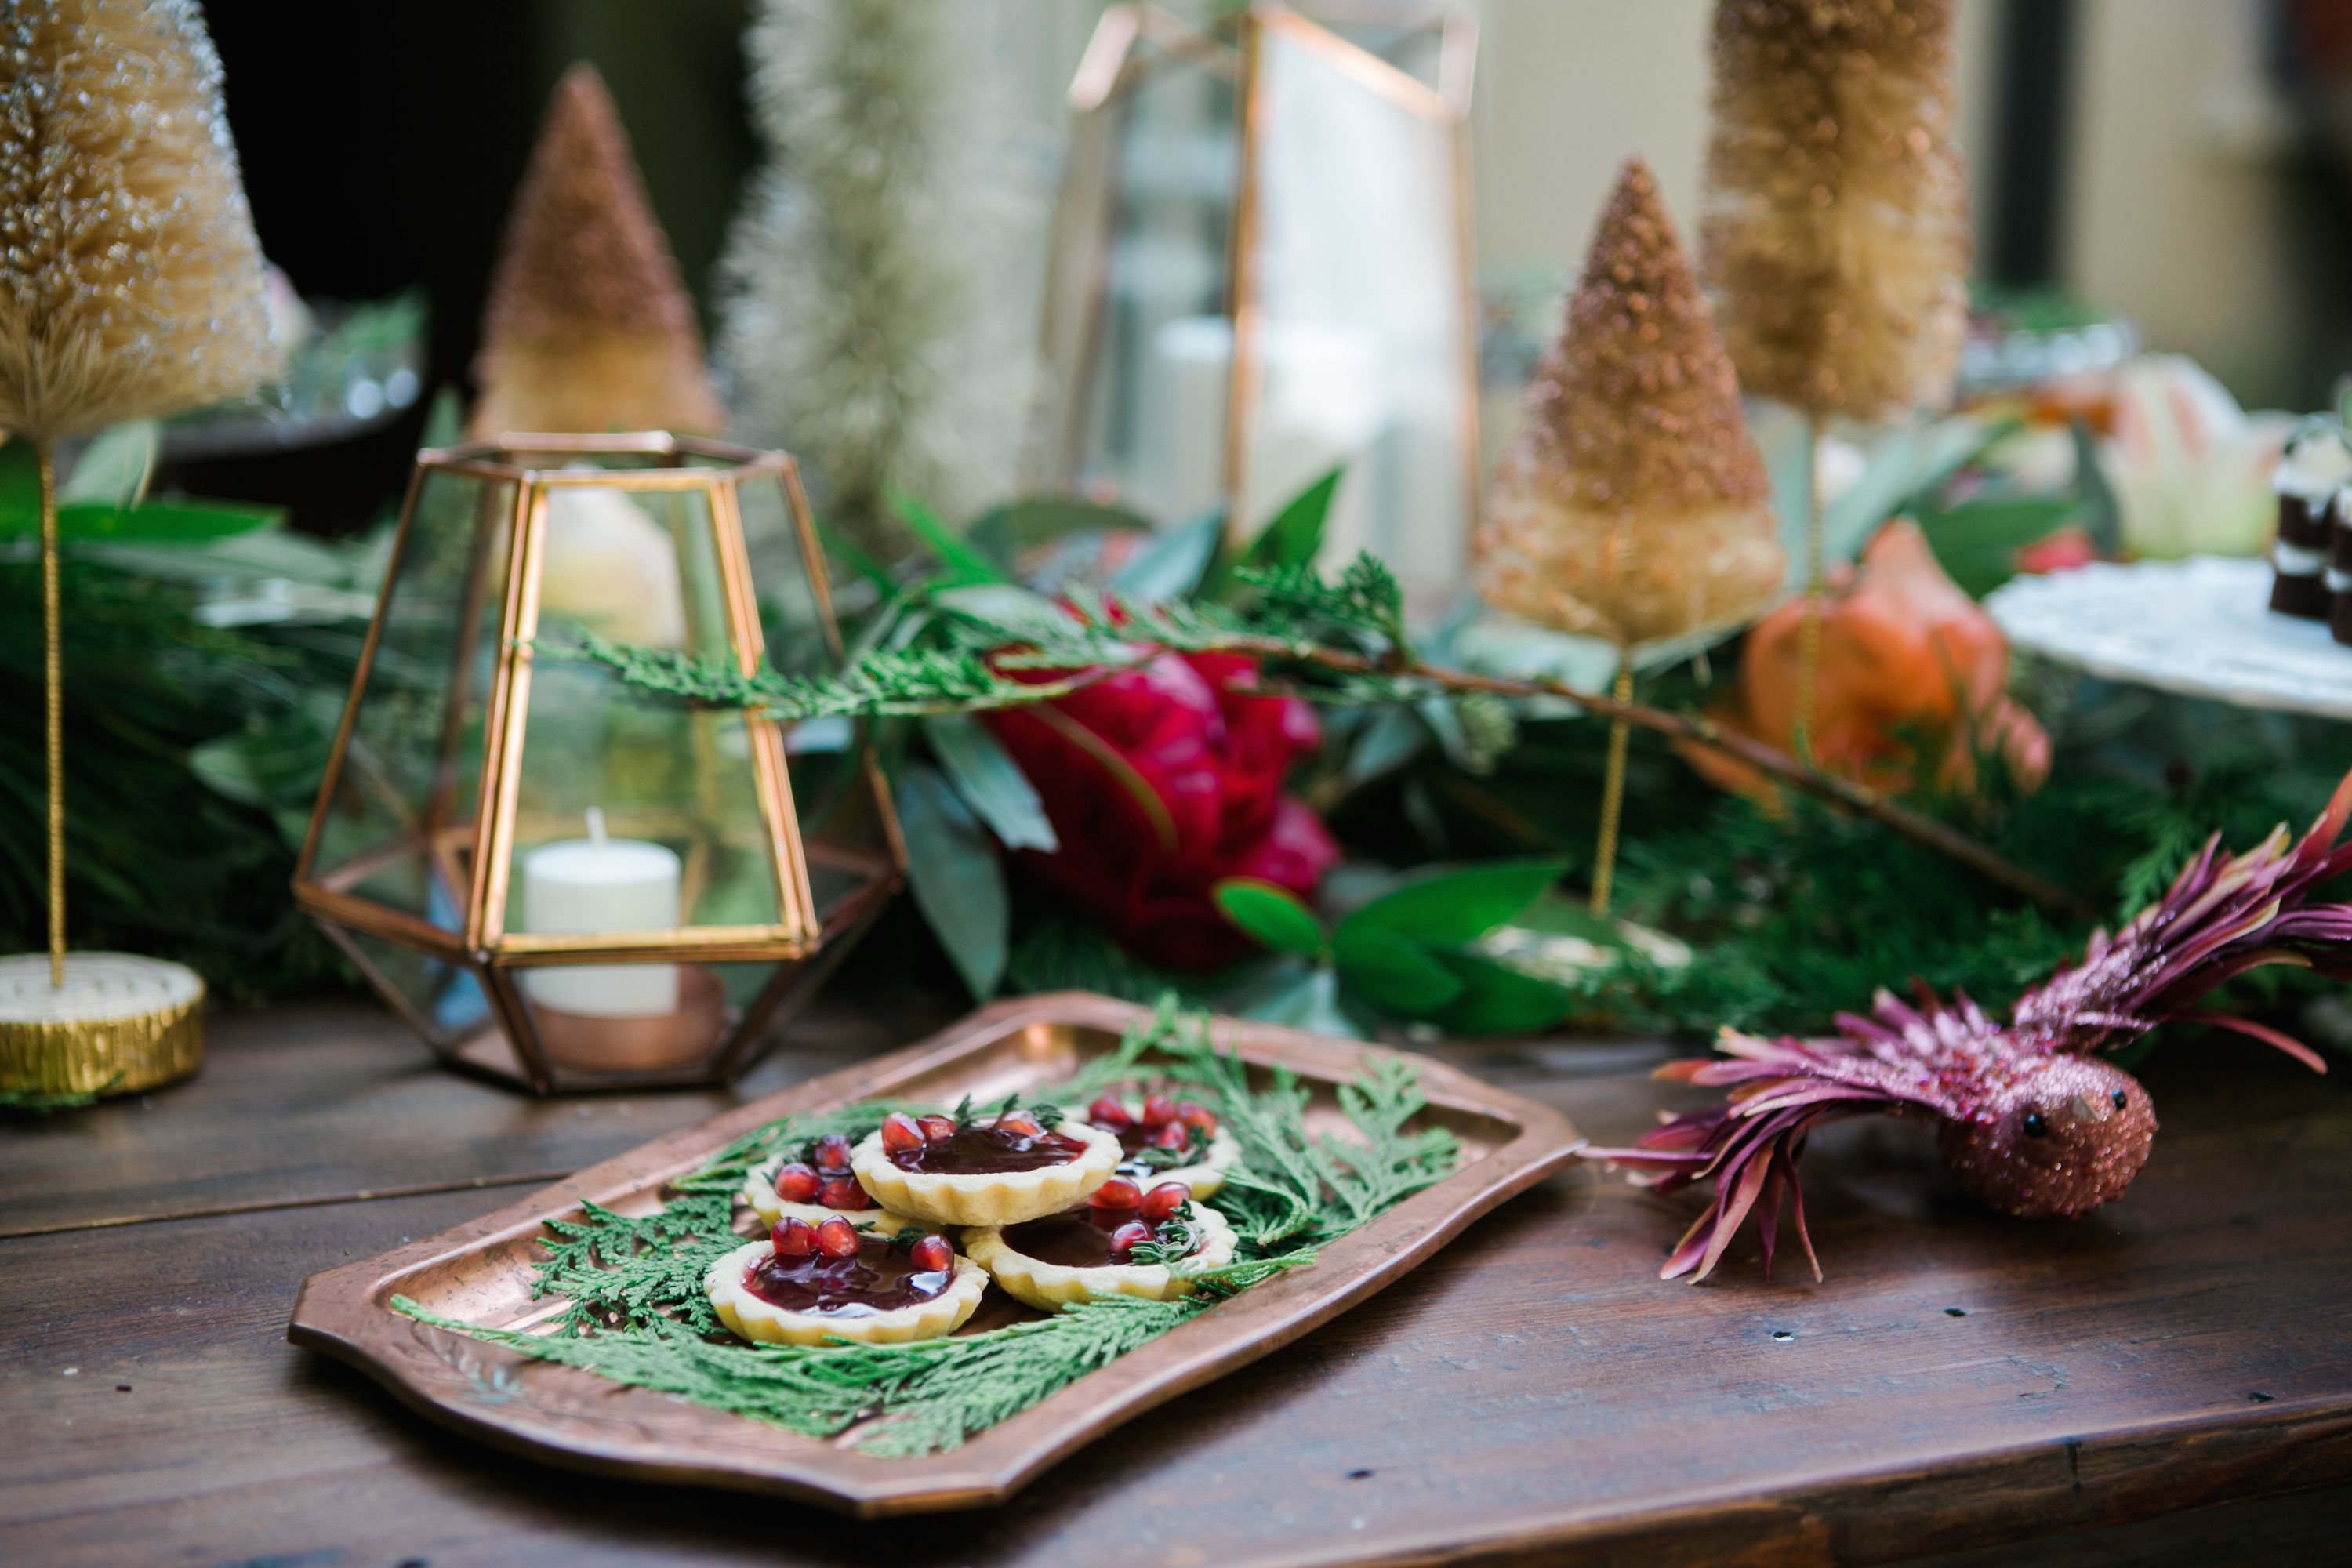 15 Best Christmas Table Decorations - Ideas for Holiday Dinner ...